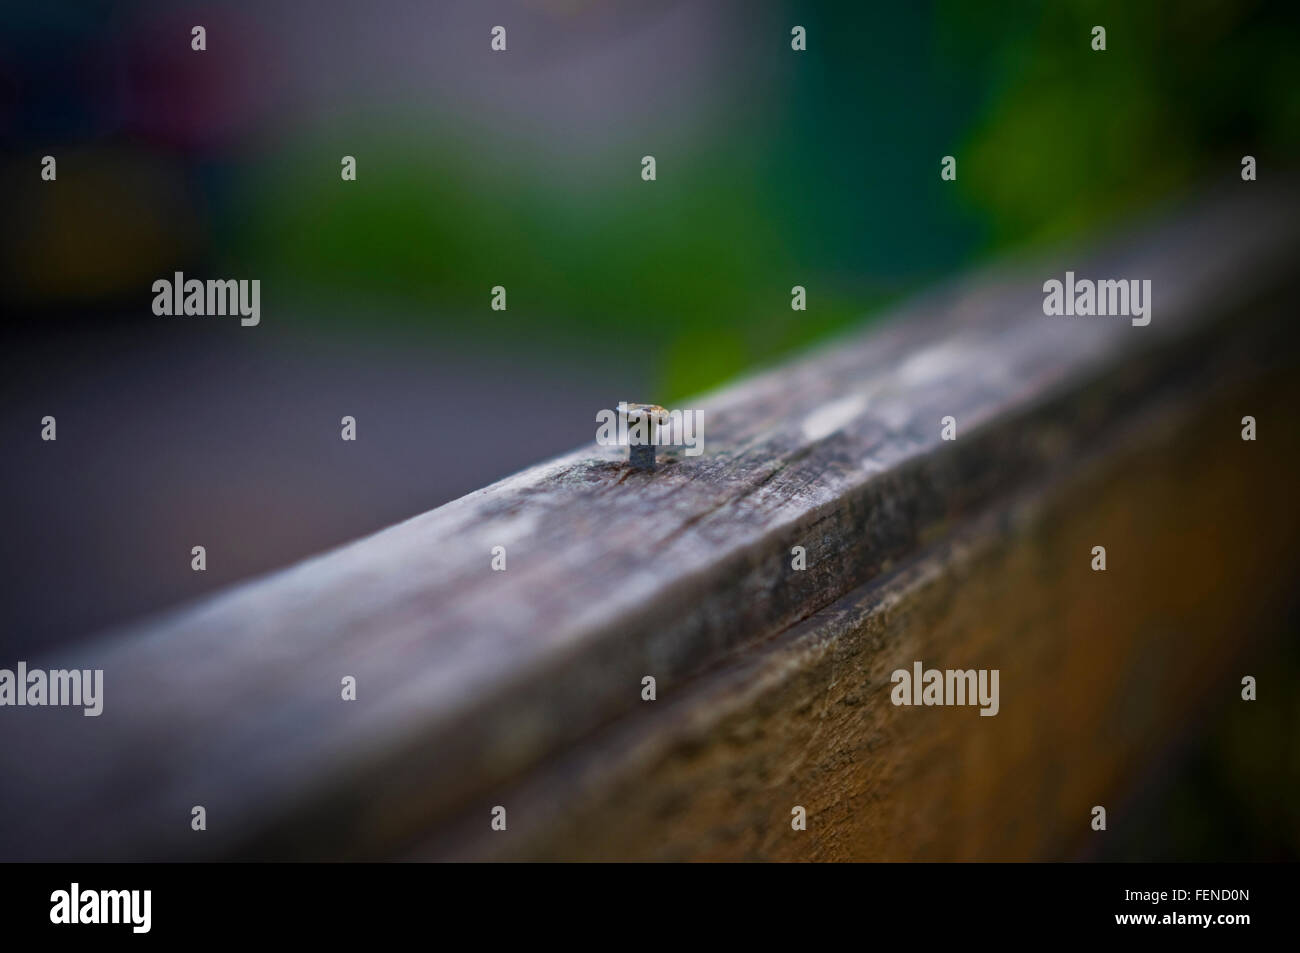 Close Up Nail In Wood Stockfotos & Close Up Nail In Wood Bilder - Alamy